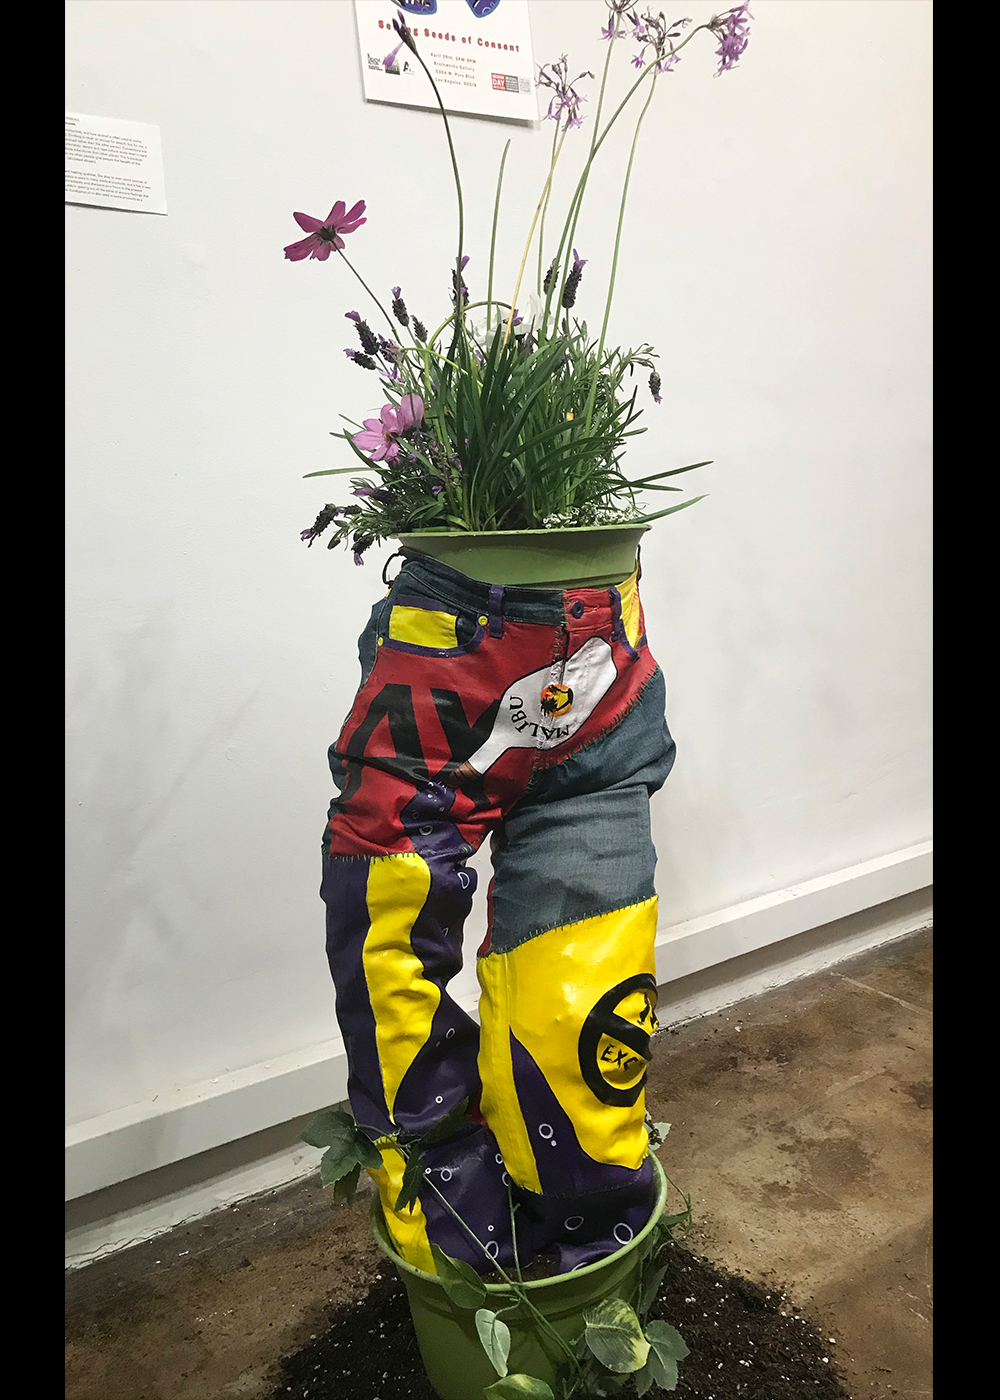 One of a group of sculpture installations made in collaboration with RAINN, for sexual assault awareness at their Denim Day event. I took apart, painted, and restitched a pair of pants to tell the story of pulling yourself back together after abuse. The group each mounted their pants to stand upright, and filled with planters, to convey the idea of growth and beauty after pain. Jessica Perkins, Jasper Perkins, Immerzart, installation, RAINN, denim day, consent, awareness sculpture, plants,